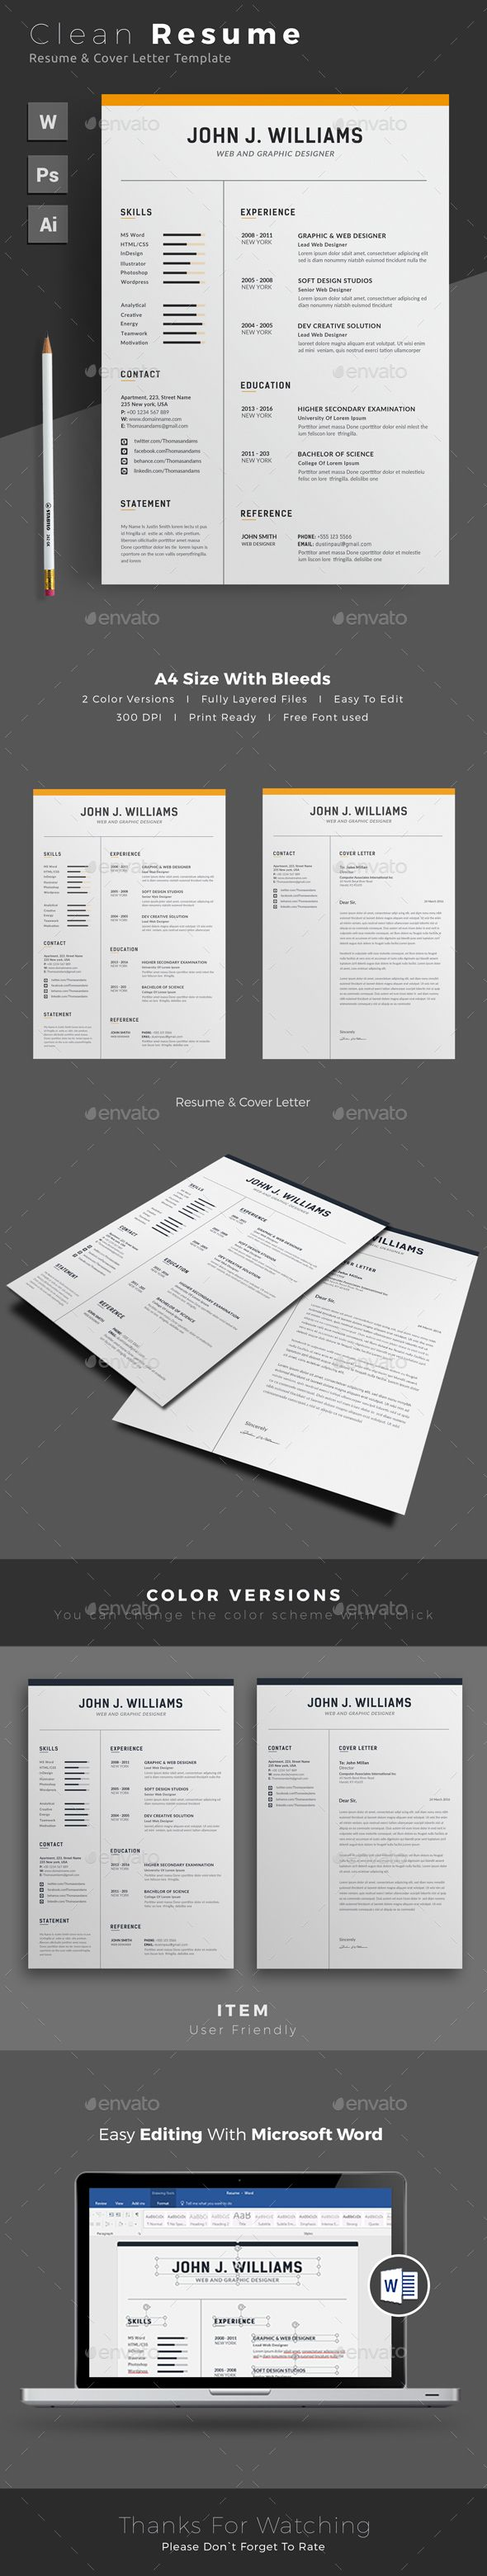 Porter Resume Brilliant Resume  Pinterest  Template Cv Template And Resume Cv